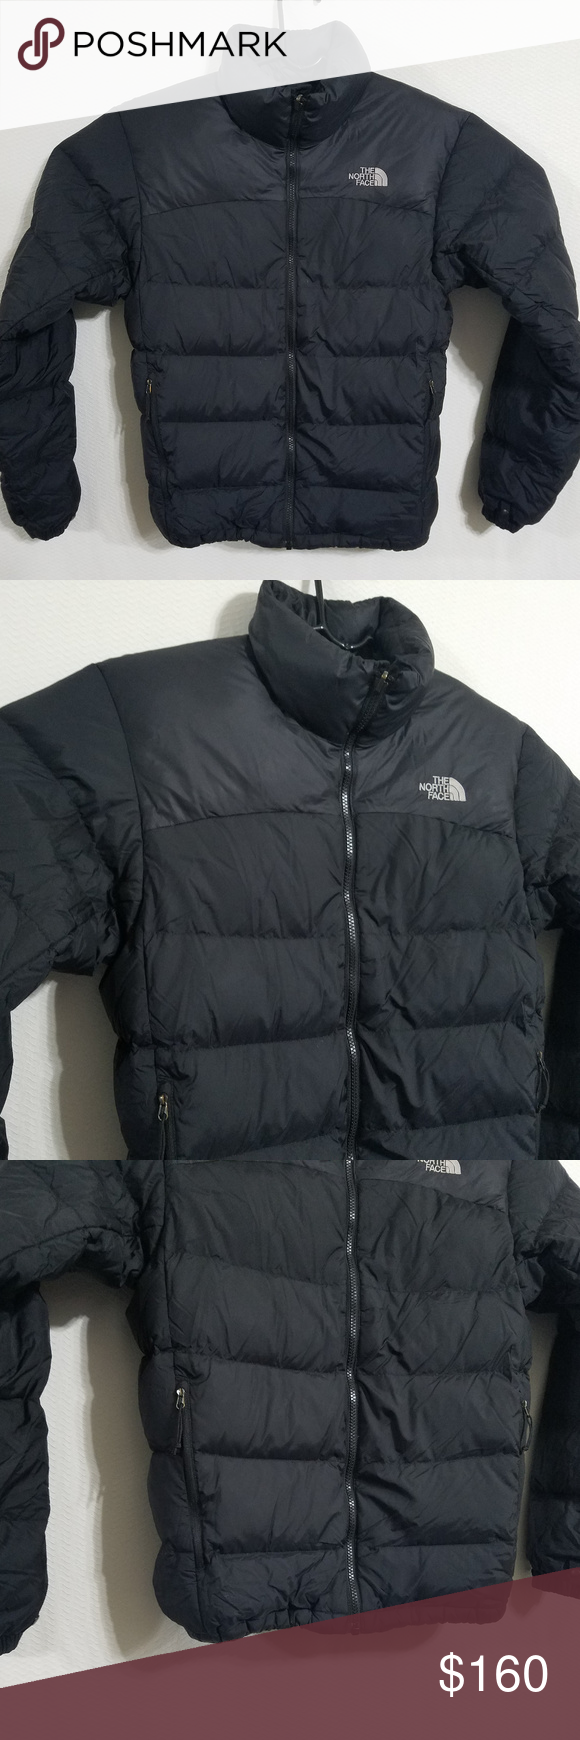 North Face Mens Small 770 Down Puffer Jacket Coat North Face Men S Jacket Product Details Brand The N North Face Jacket Mens North Face Mens North Face Coat [ 1740 x 580 Pixel ]